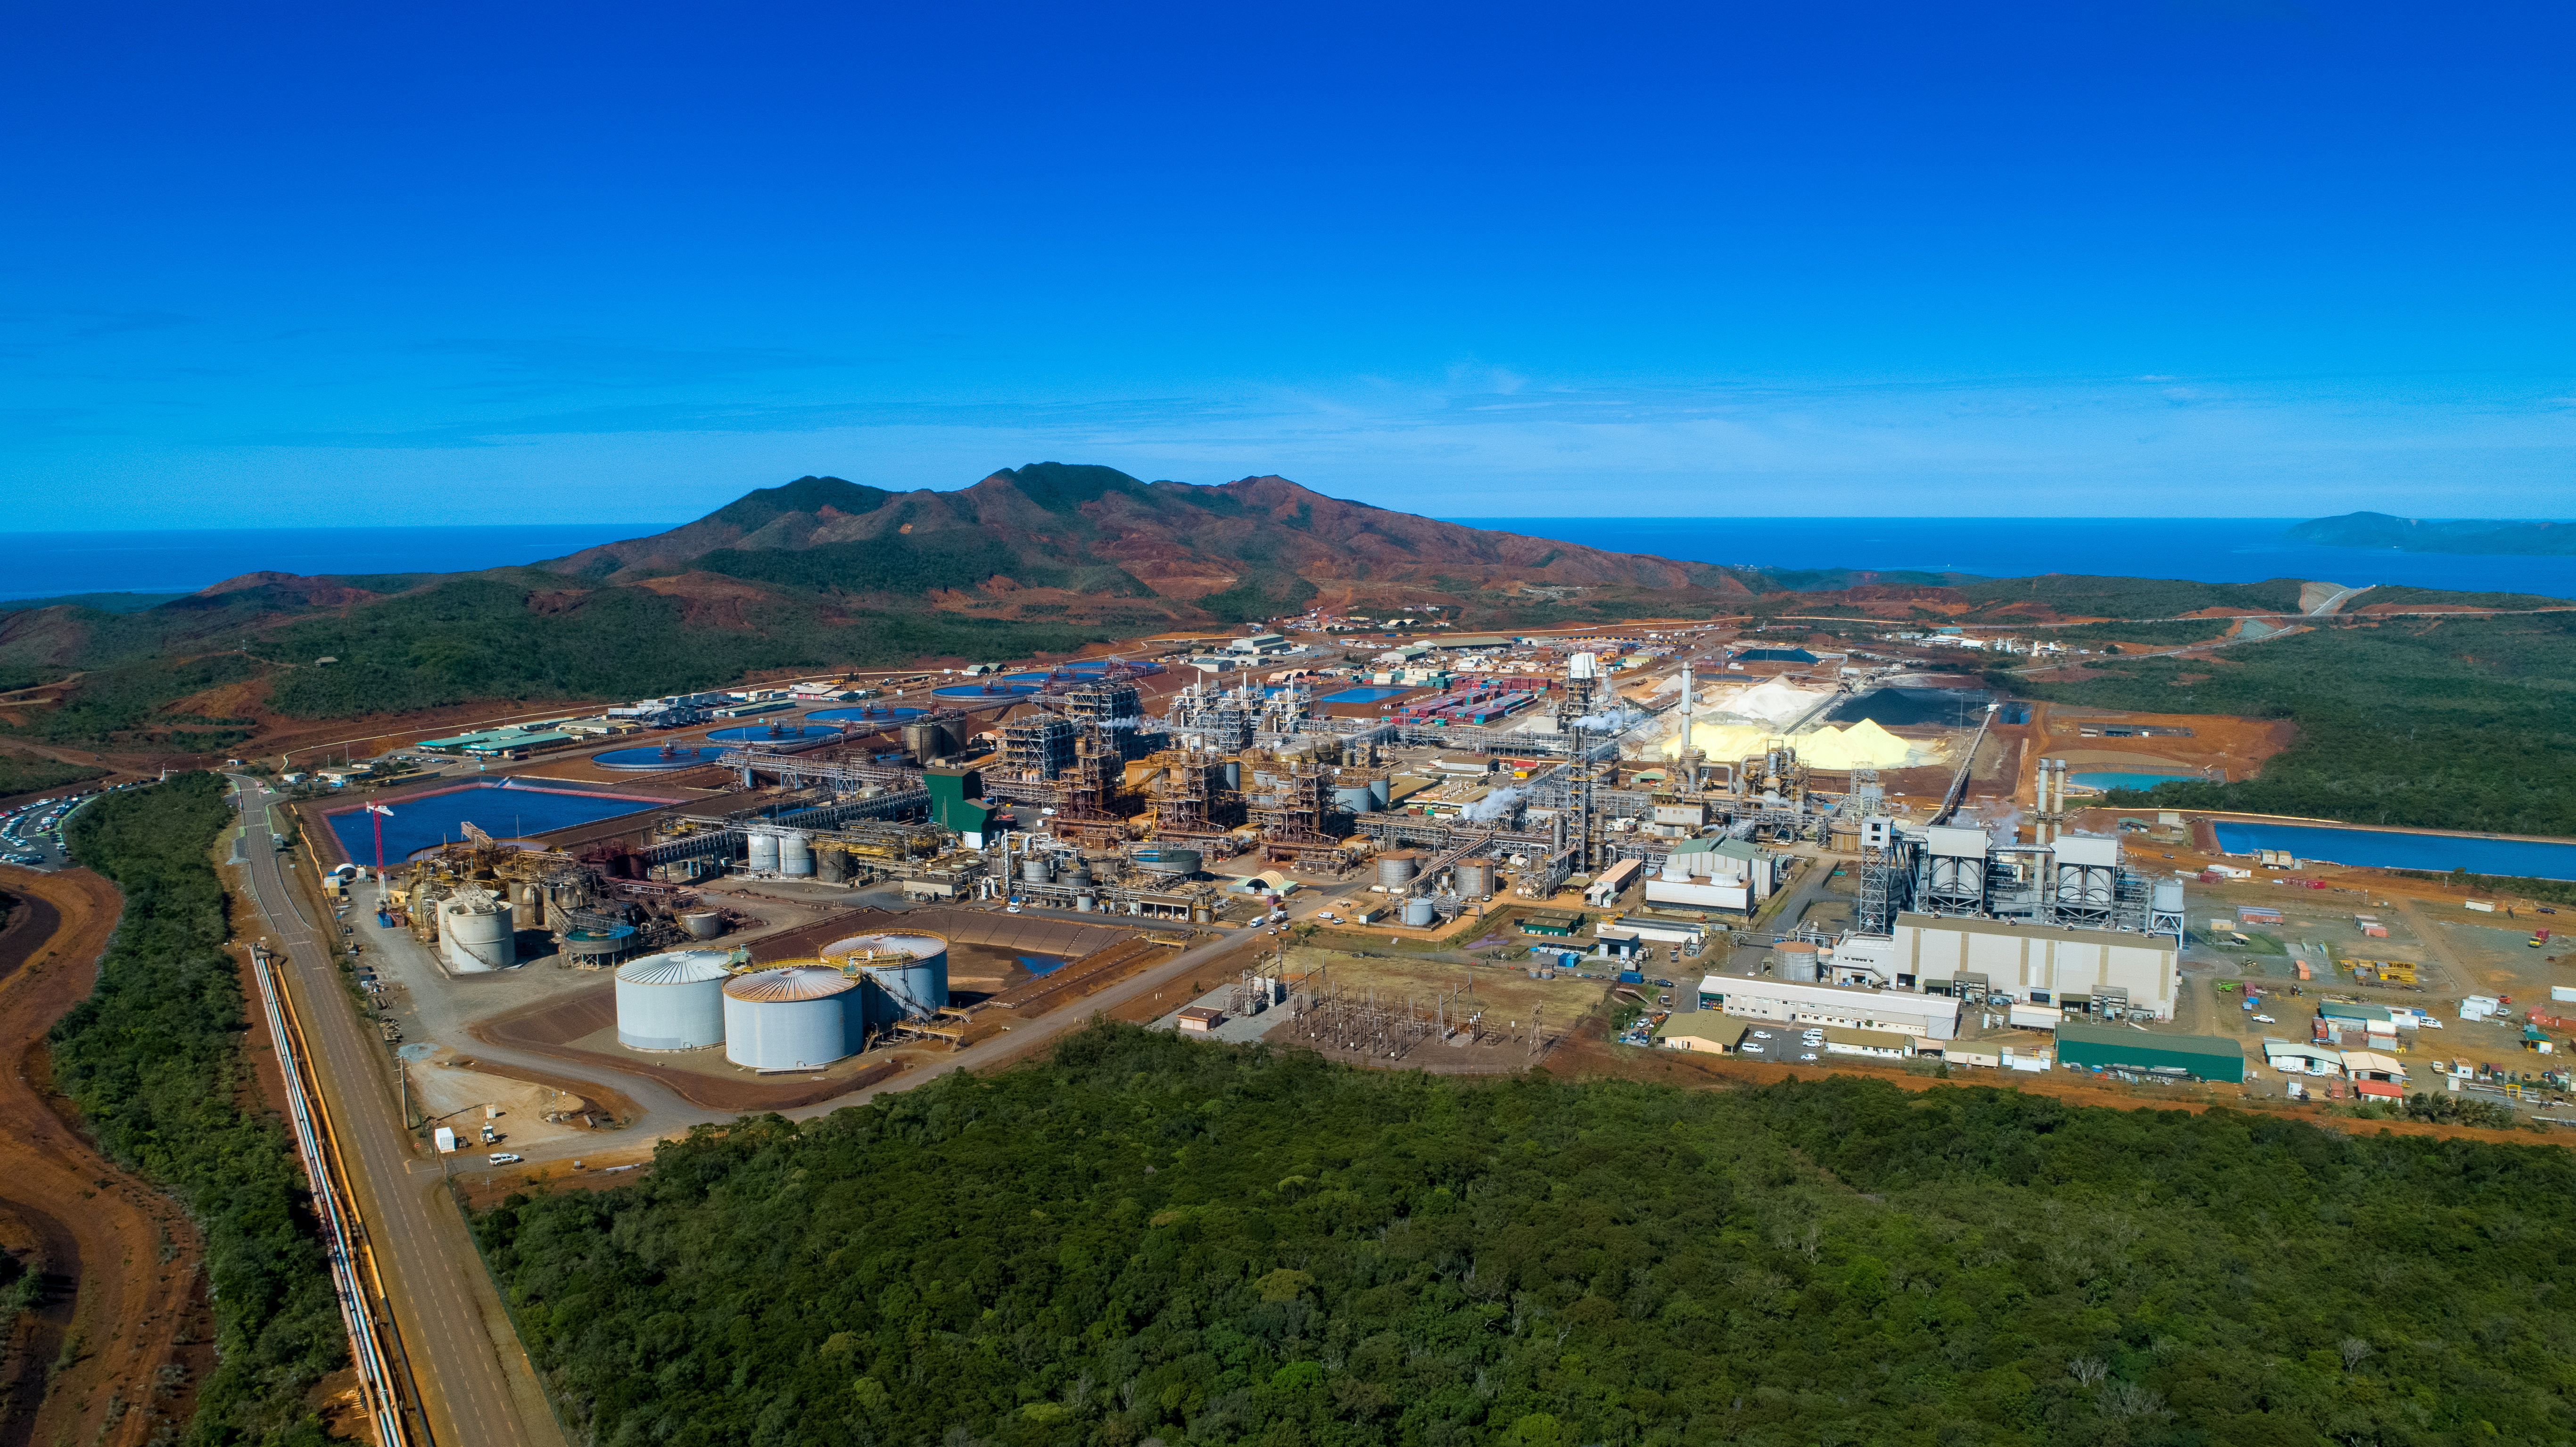 A general view of Prony Resources' hydrometallurgical plant in New Caledonia, which processes nickel ore to supply to the electric vehicle market, is seen in this 2020 handout photo released to Reuters on October 13, 2021. Radikal Pictures 2020/Handout via REUTERS